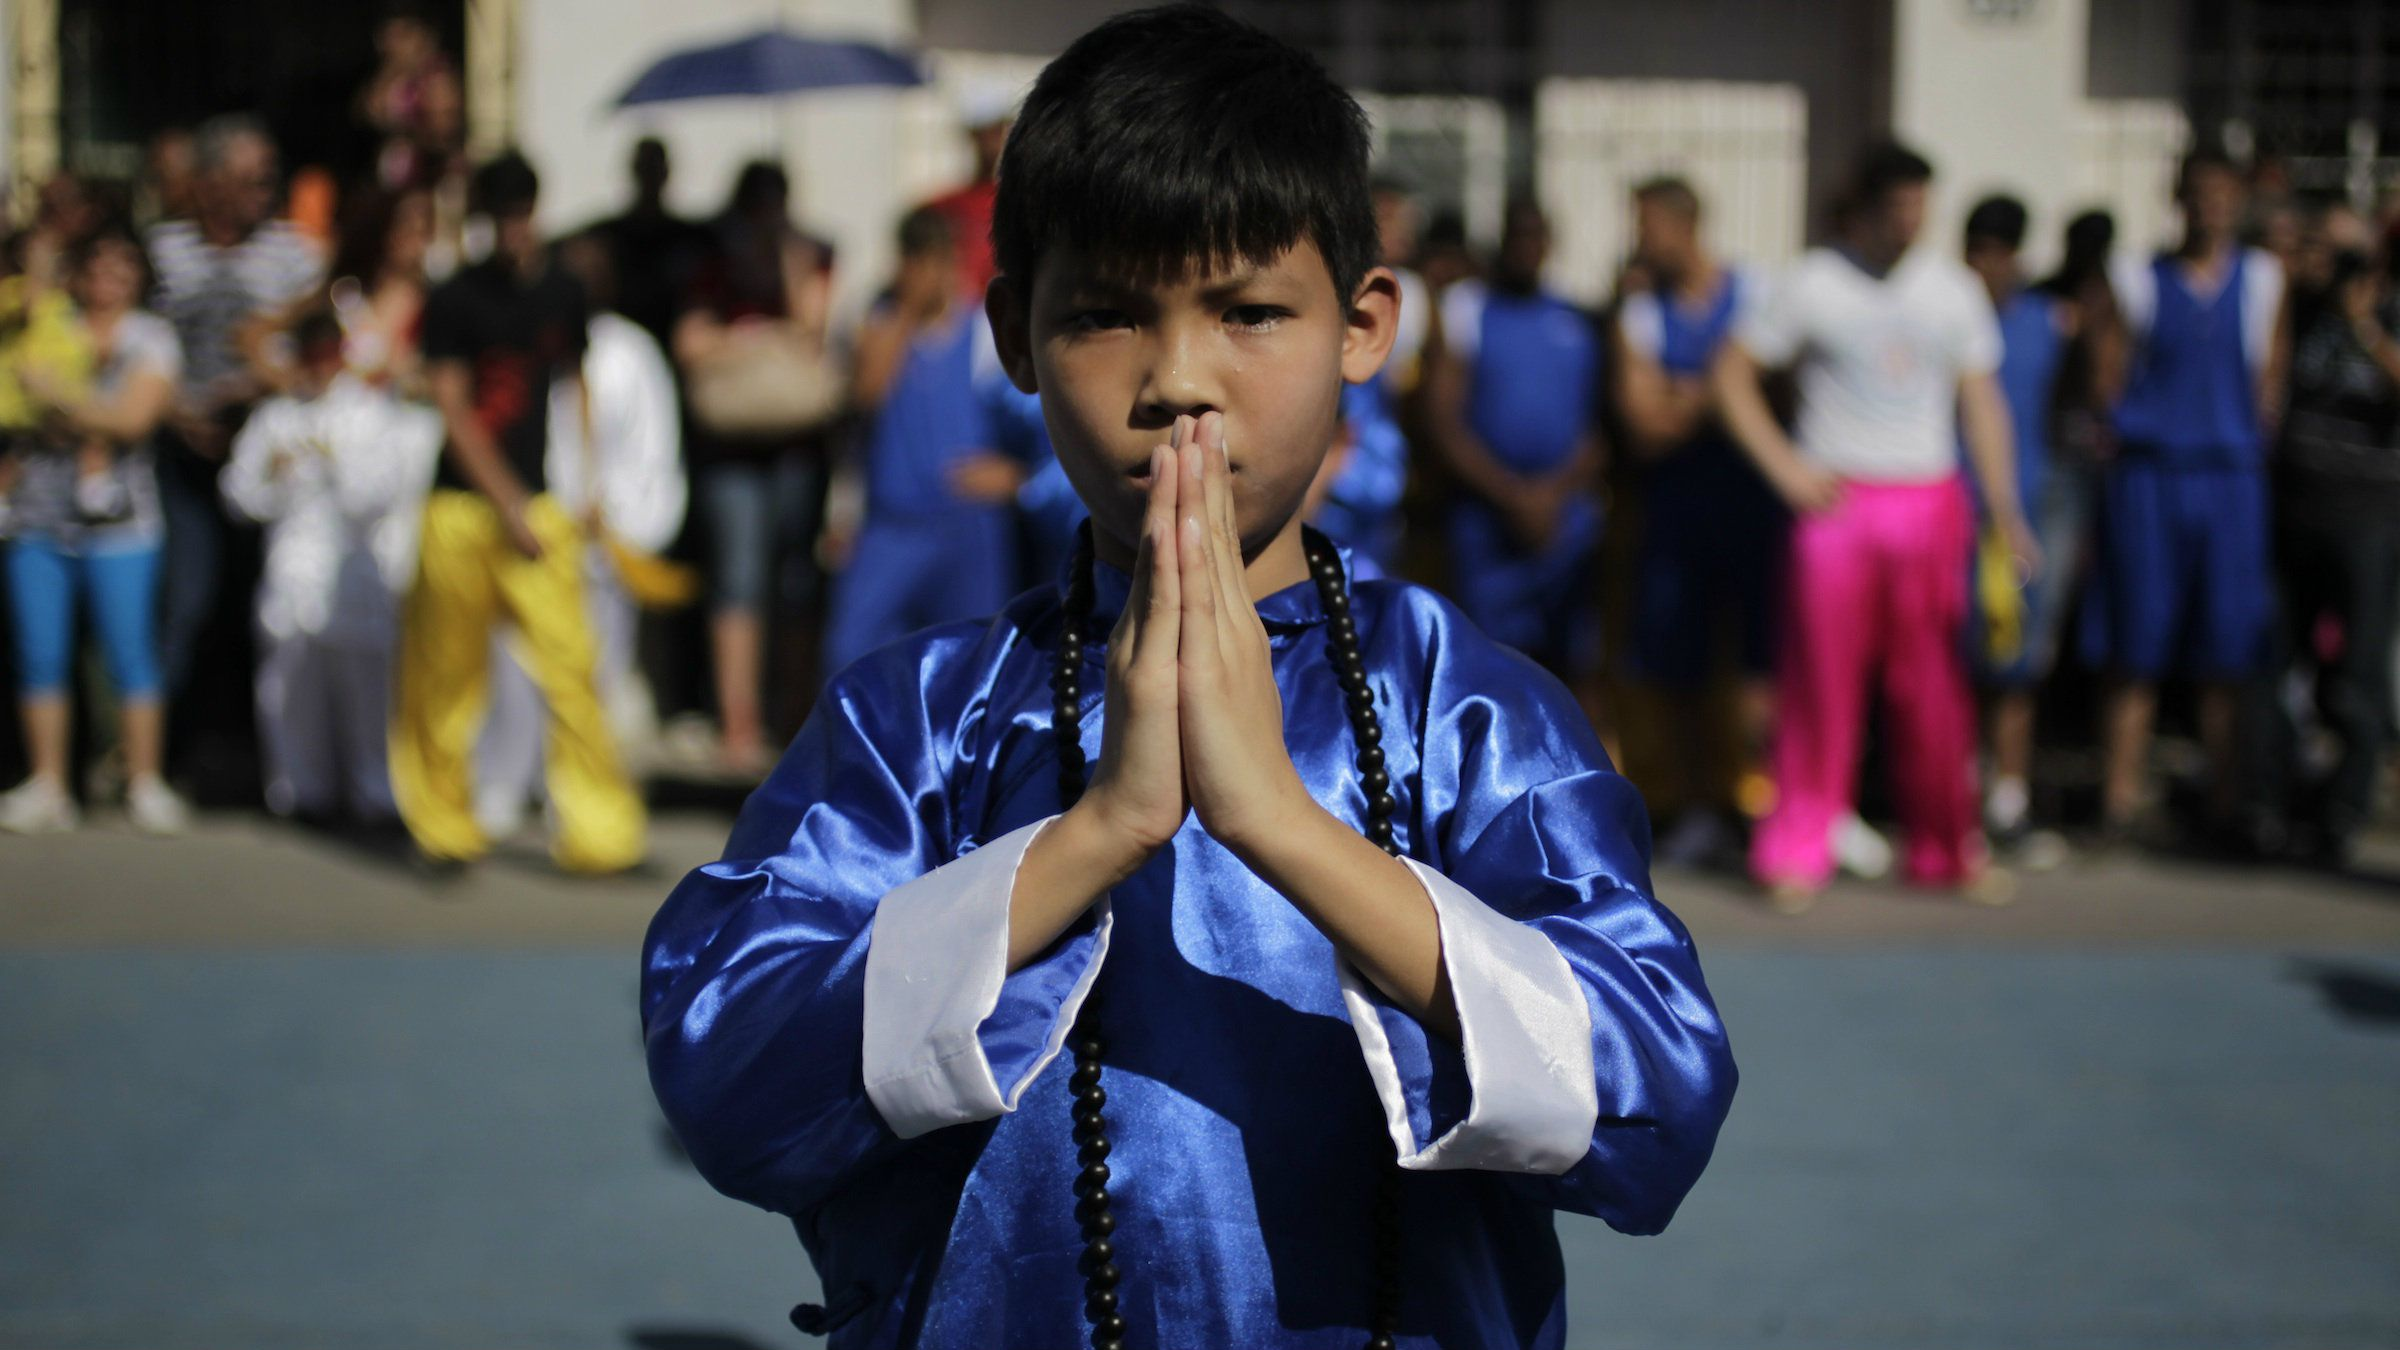 A child practices kung fu in Havana's Chinatown